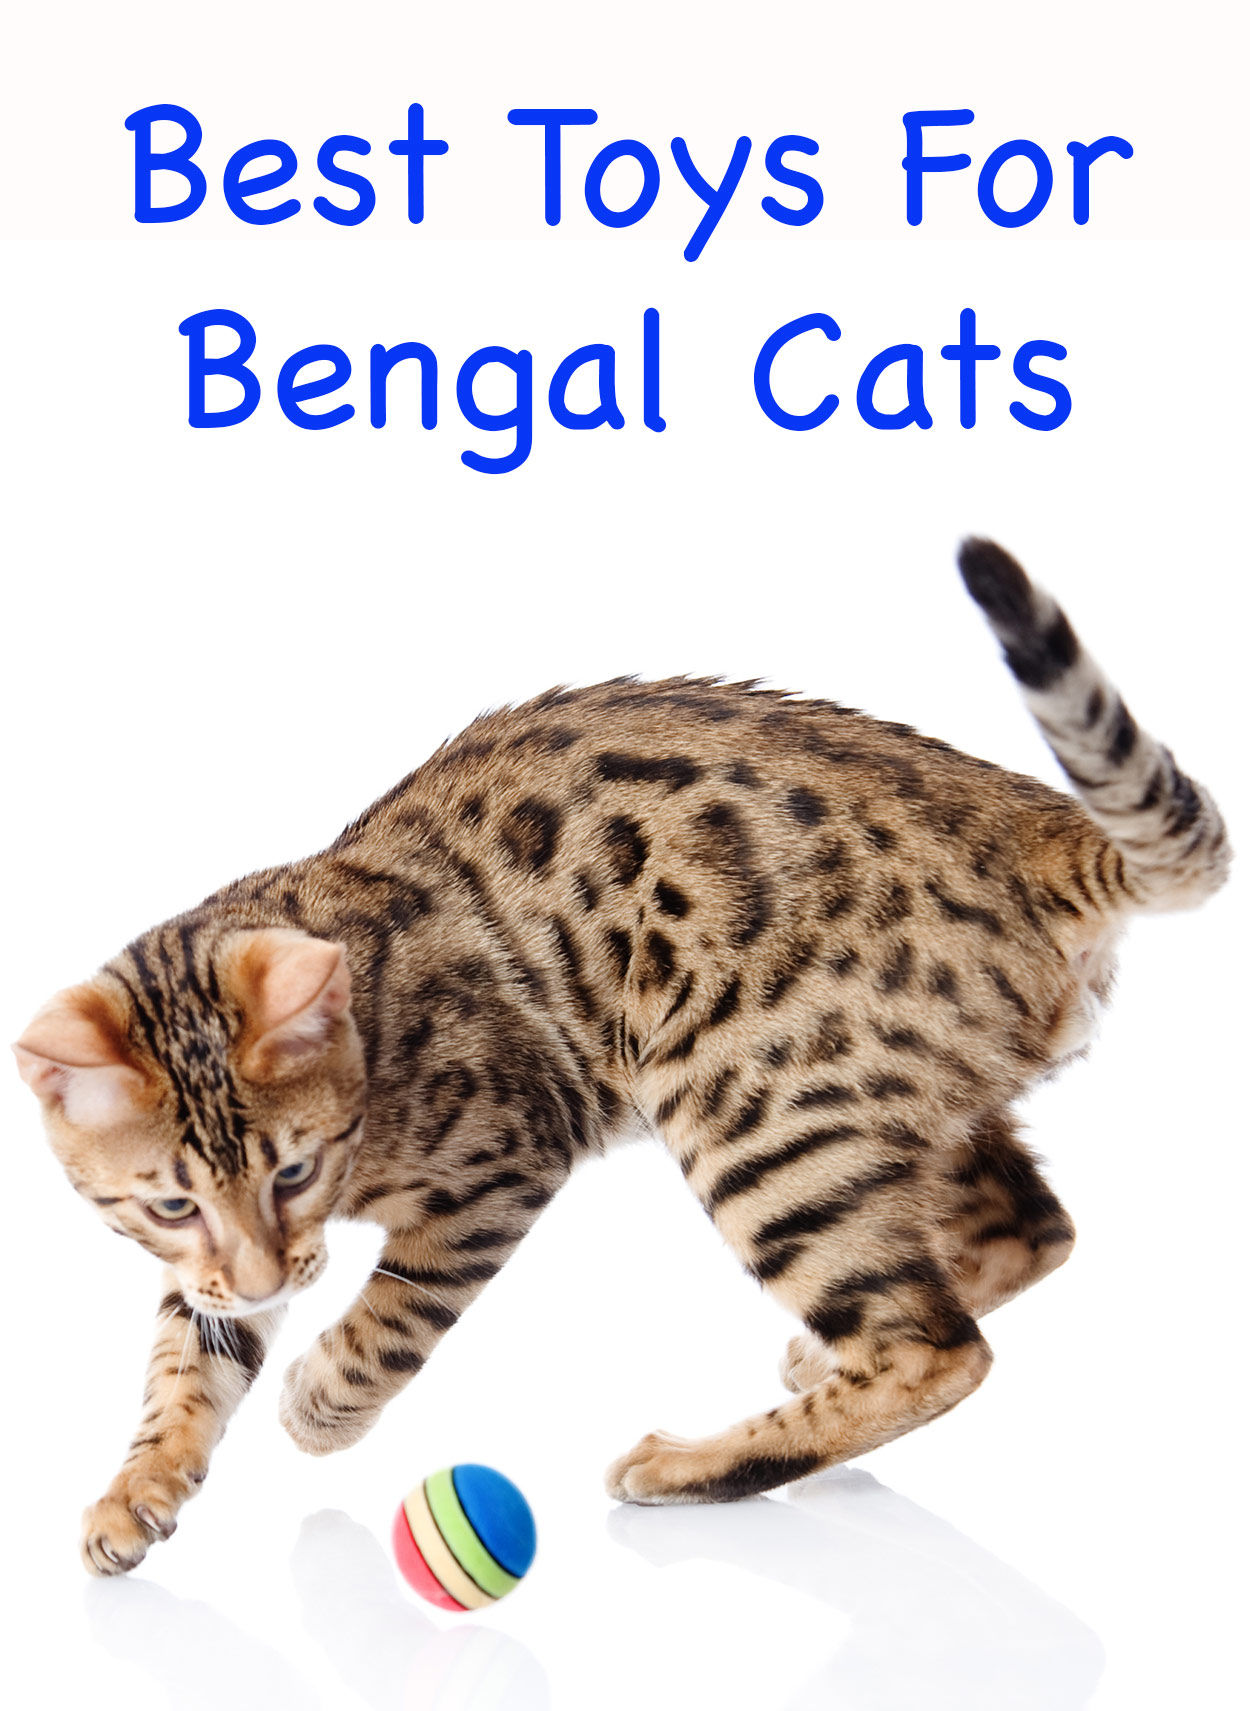 bengal cat toys - our favorite and most interactive choices